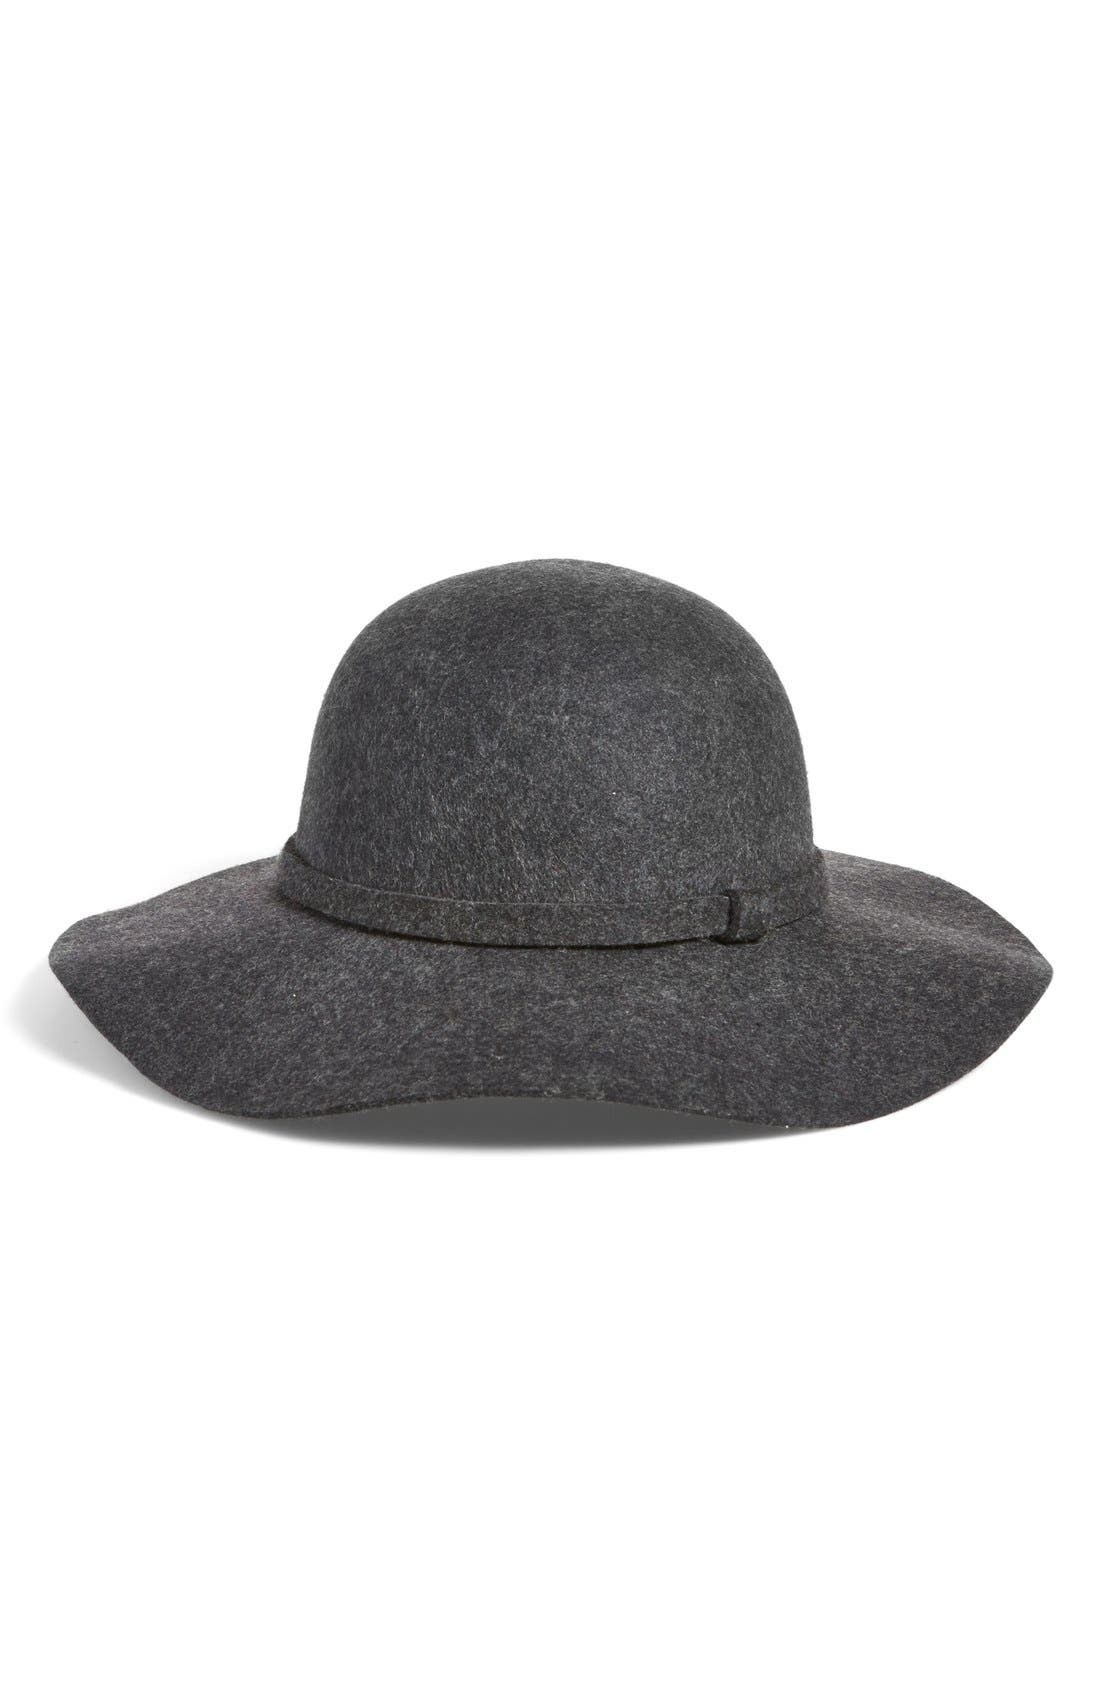 Floppy Wool Hat,                             Alternate thumbnail 2, color,                             001